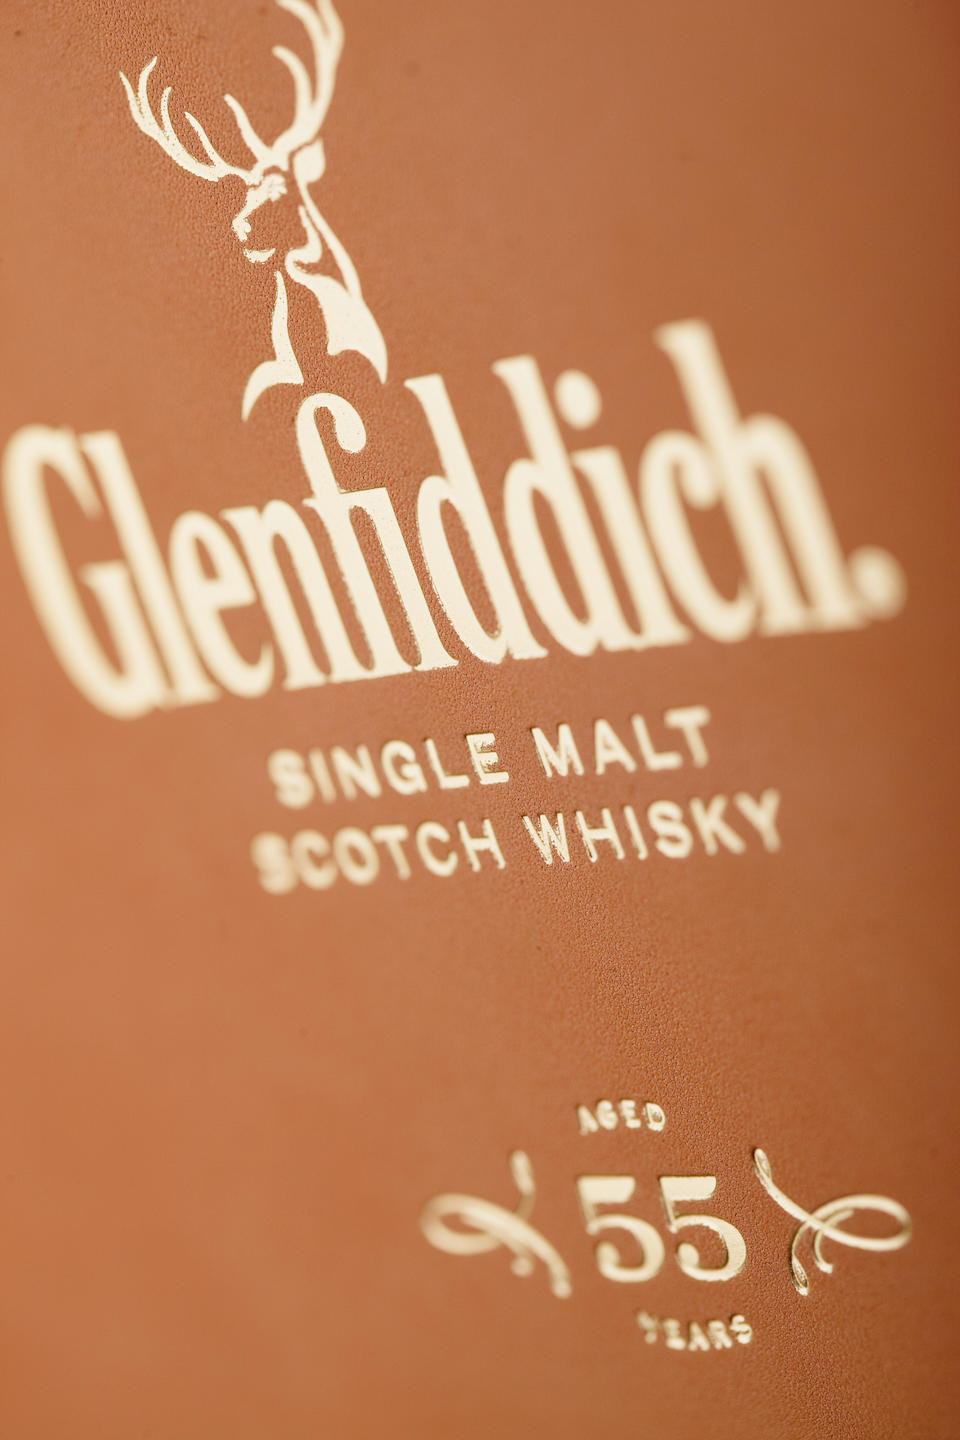 The Glenfiddich Janet Sheed Roberts Reserve-1955